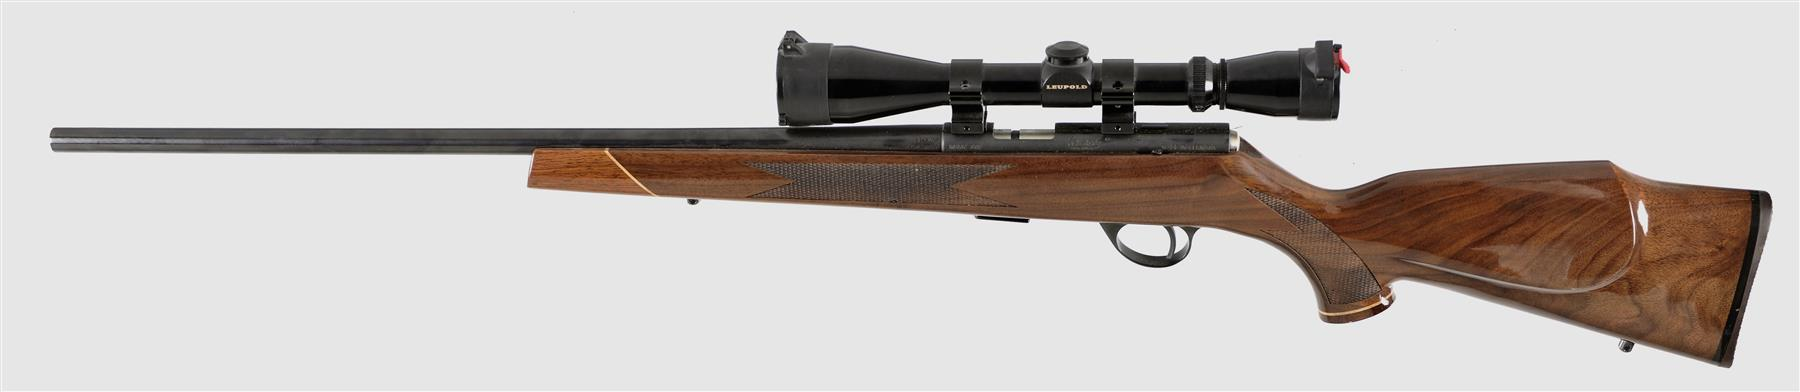 Left side vew of the J.G. Anschutz made Weatherby Mark XXII for sale by Rock Island Auction) (Picture courtesy Rock Island Auction).